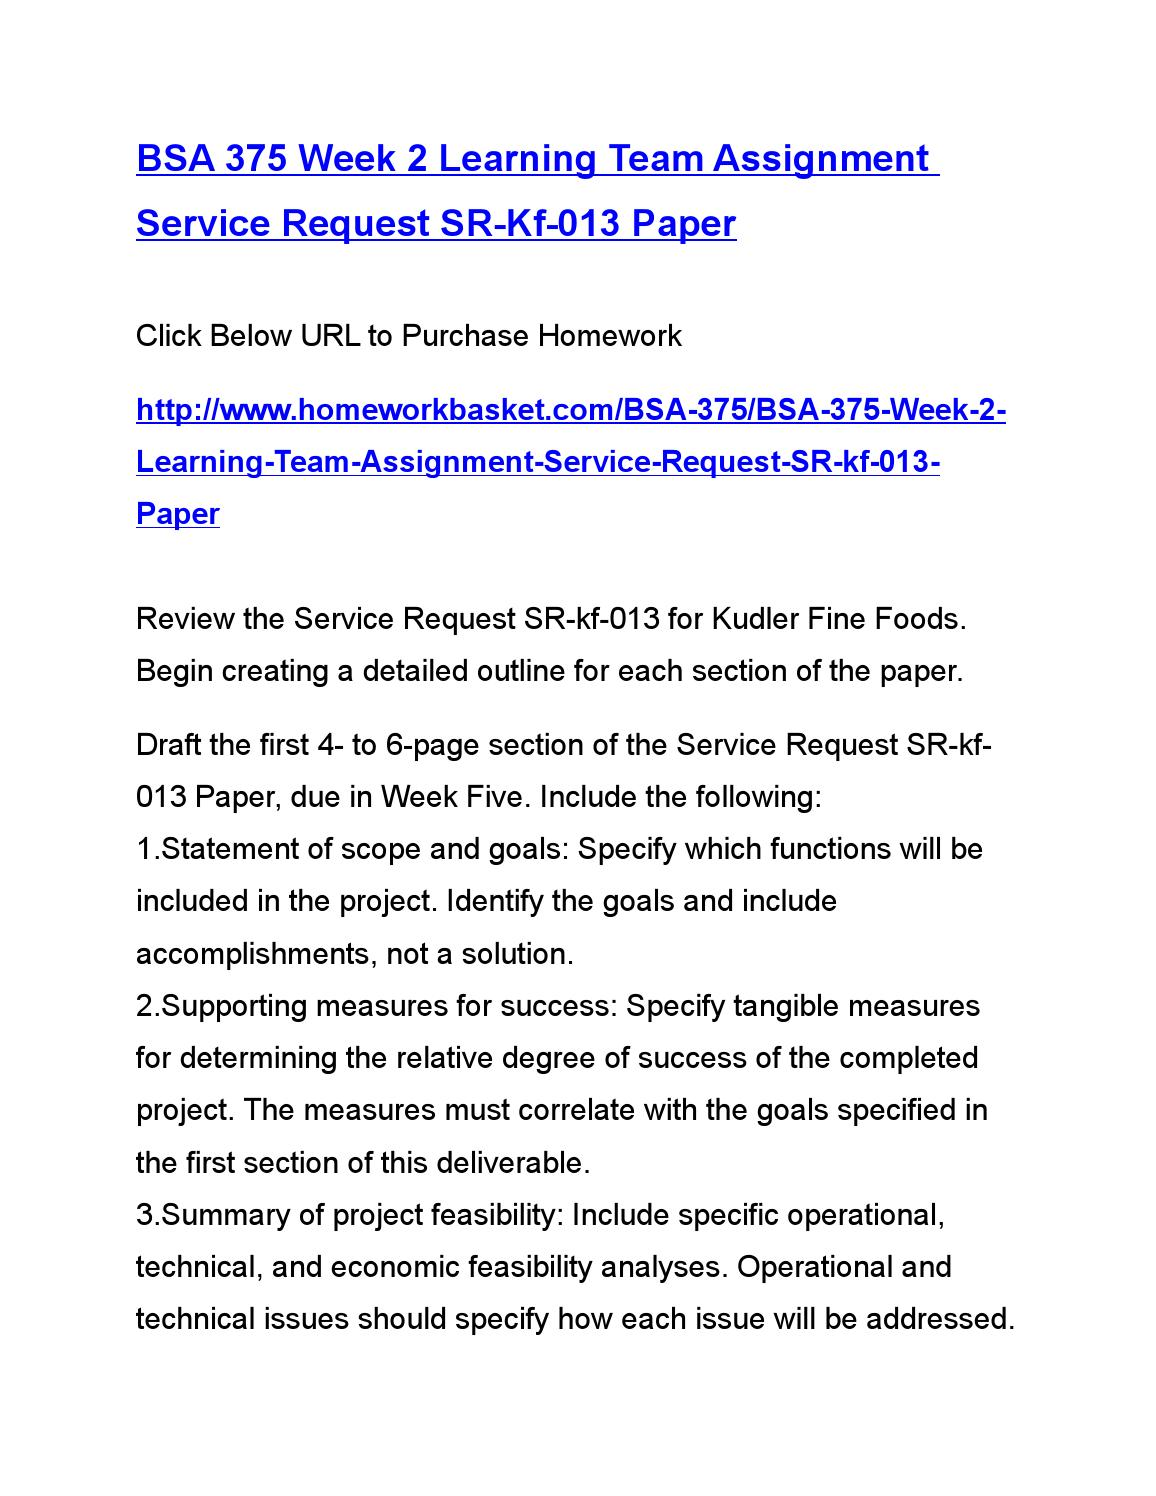 Bsa 375 supporting measures for success specify tangible measures for determining the relative degre